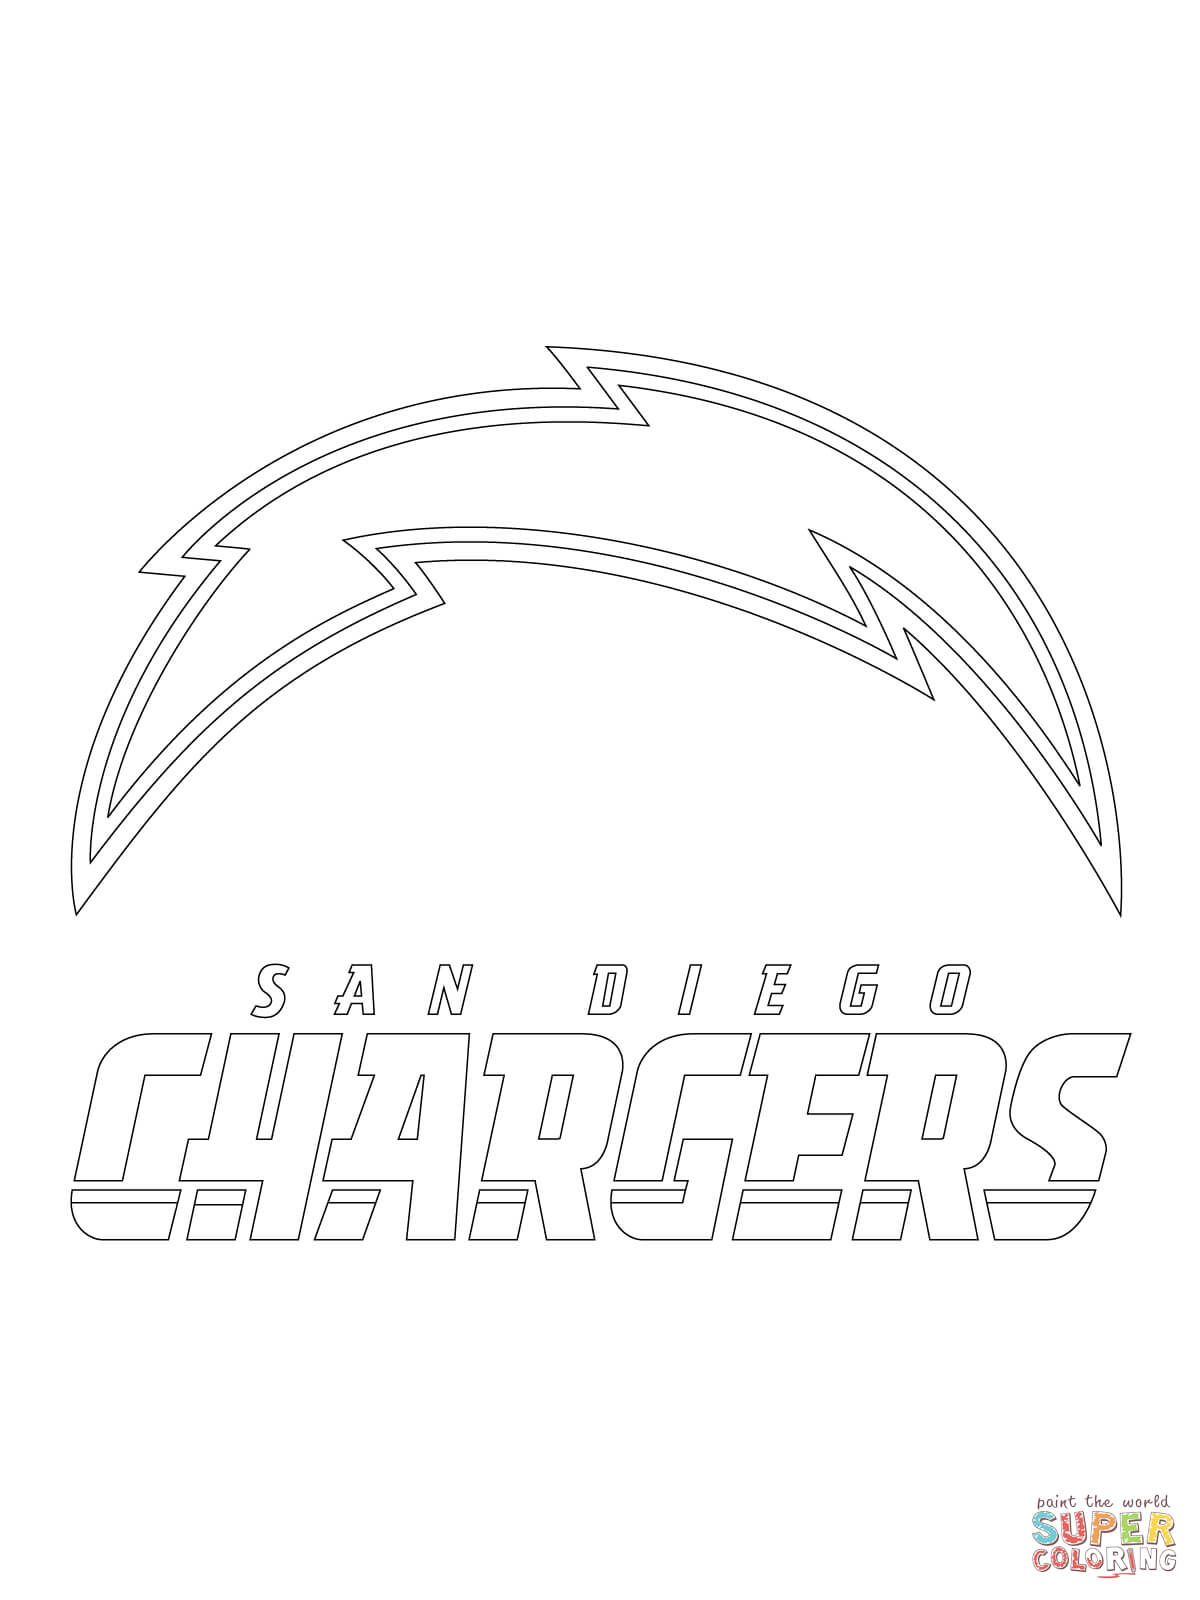 San Diego Chargers Logo coloring page | Free Printable Coloring ...